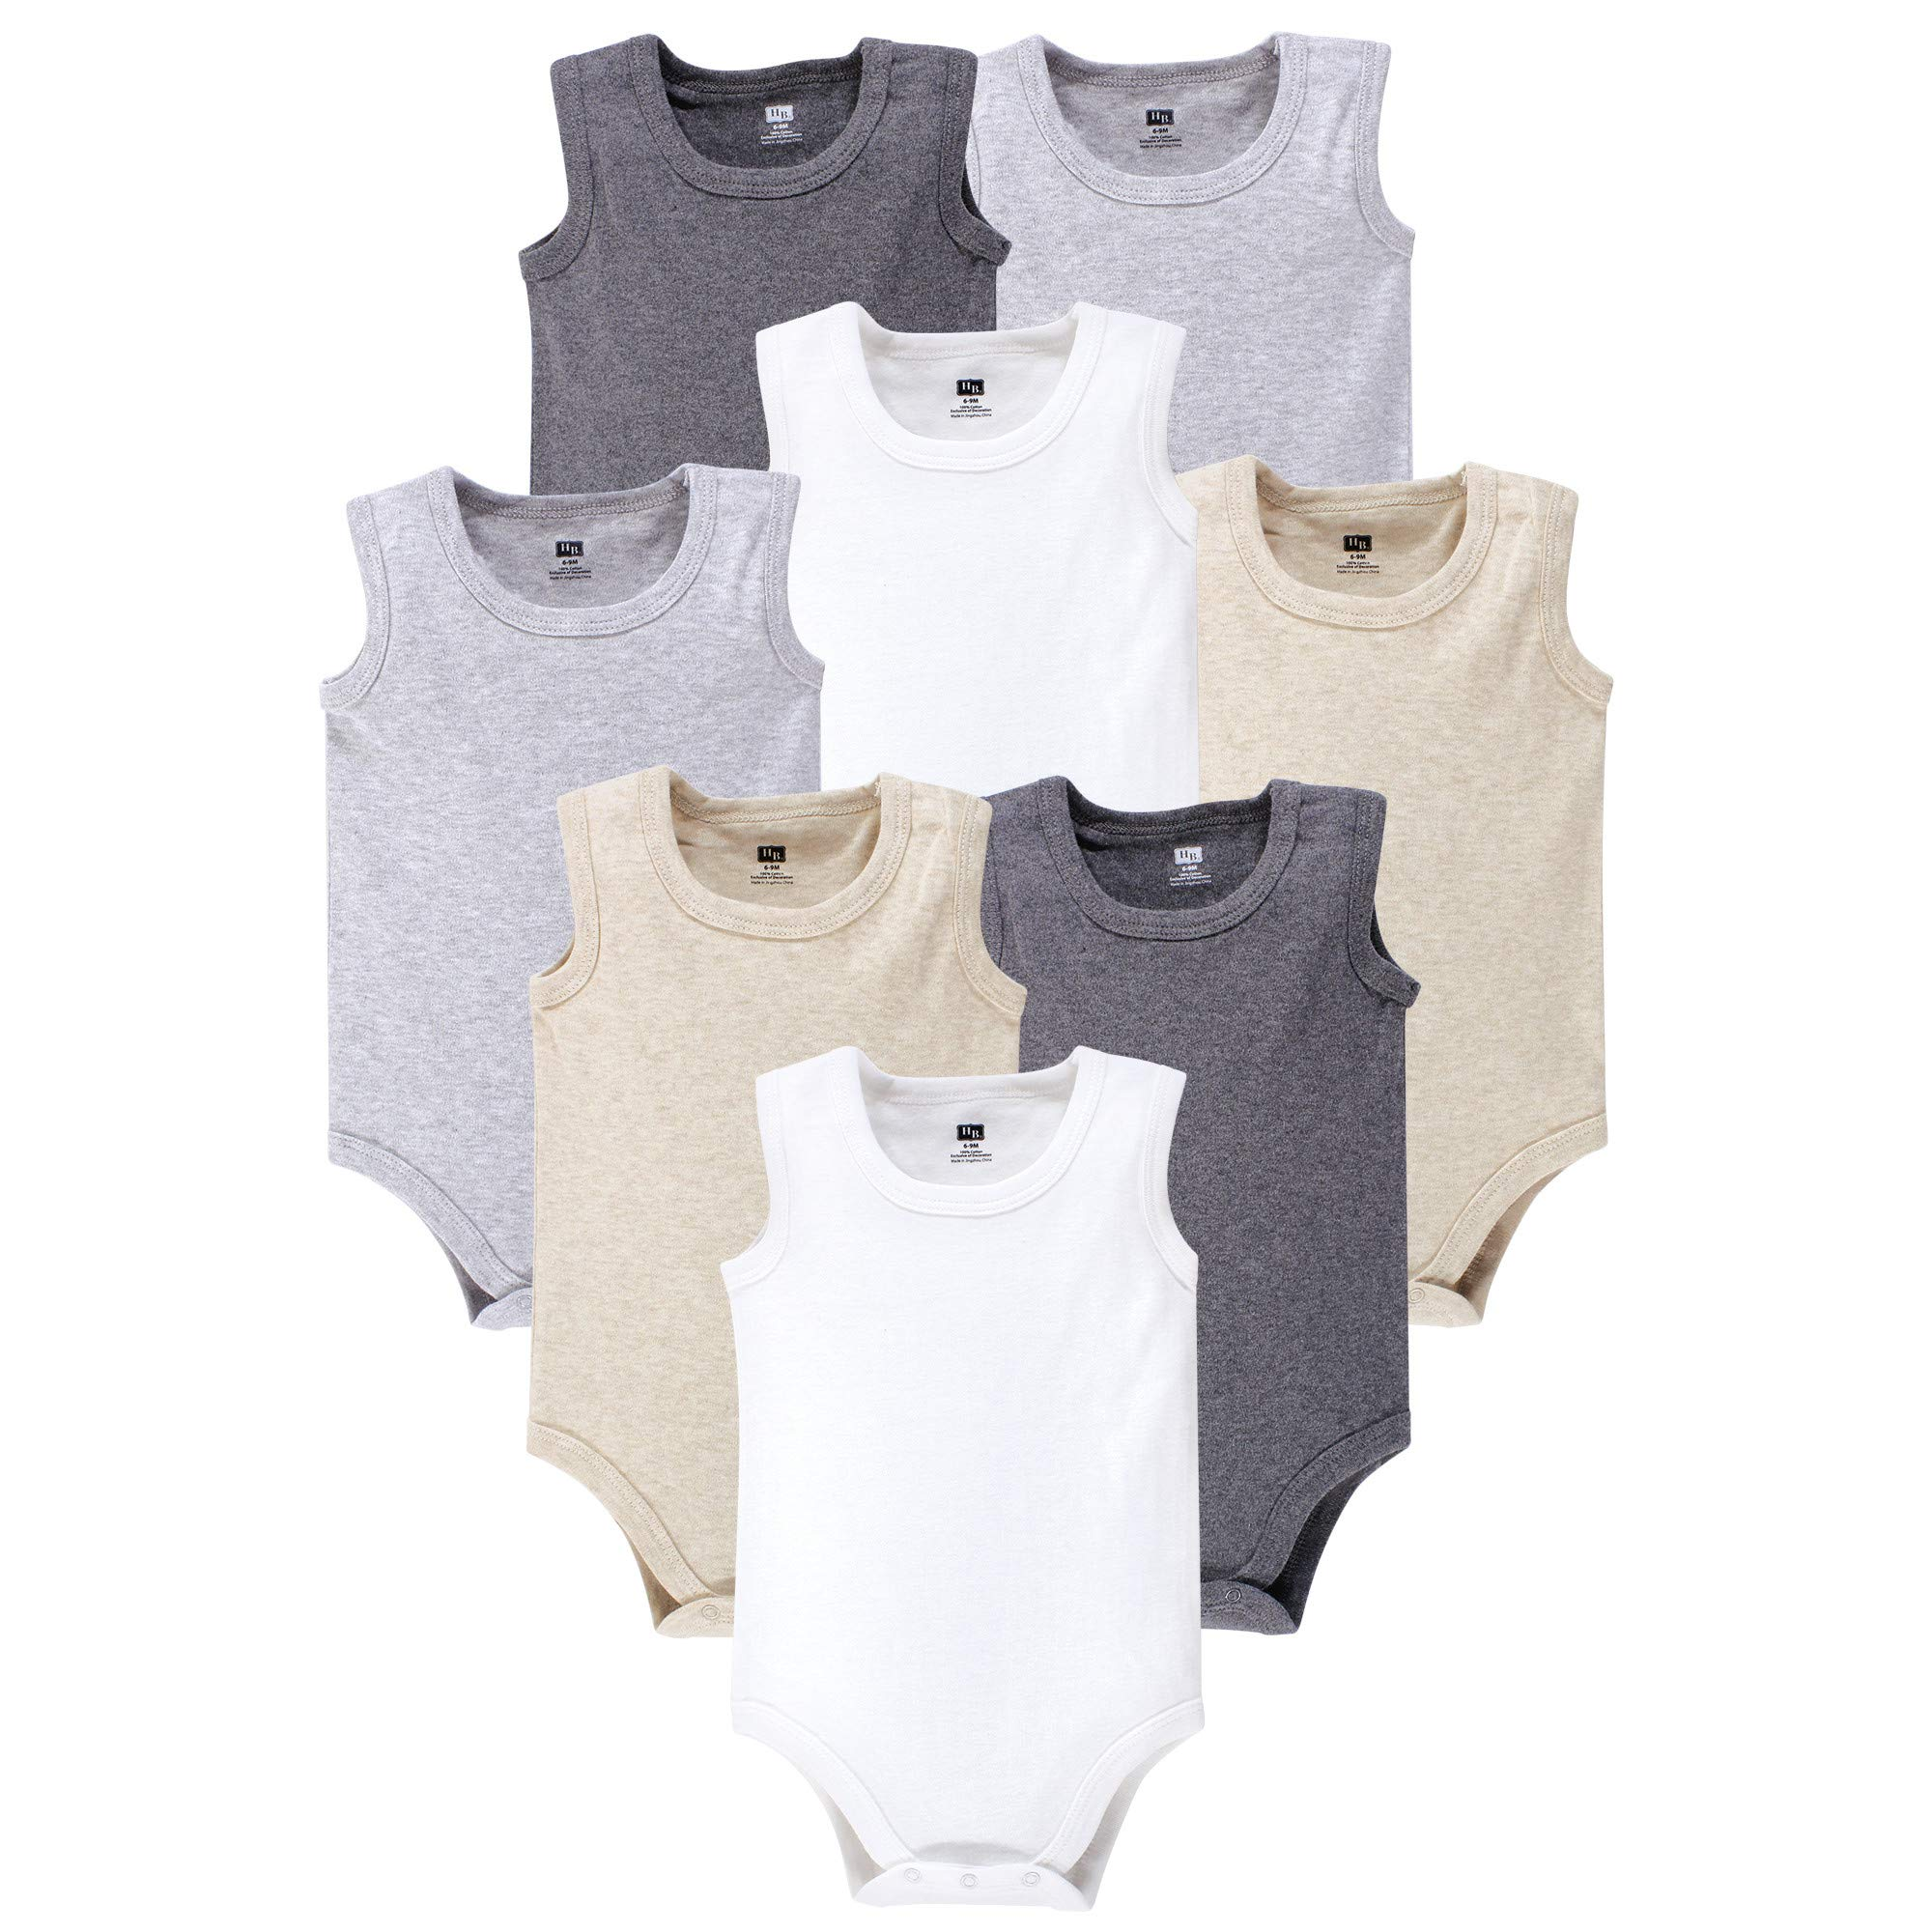 Hudson Baby 8 Pack Sleeveless Cotton Bodysuits, Heather Gray, 18-24 Months